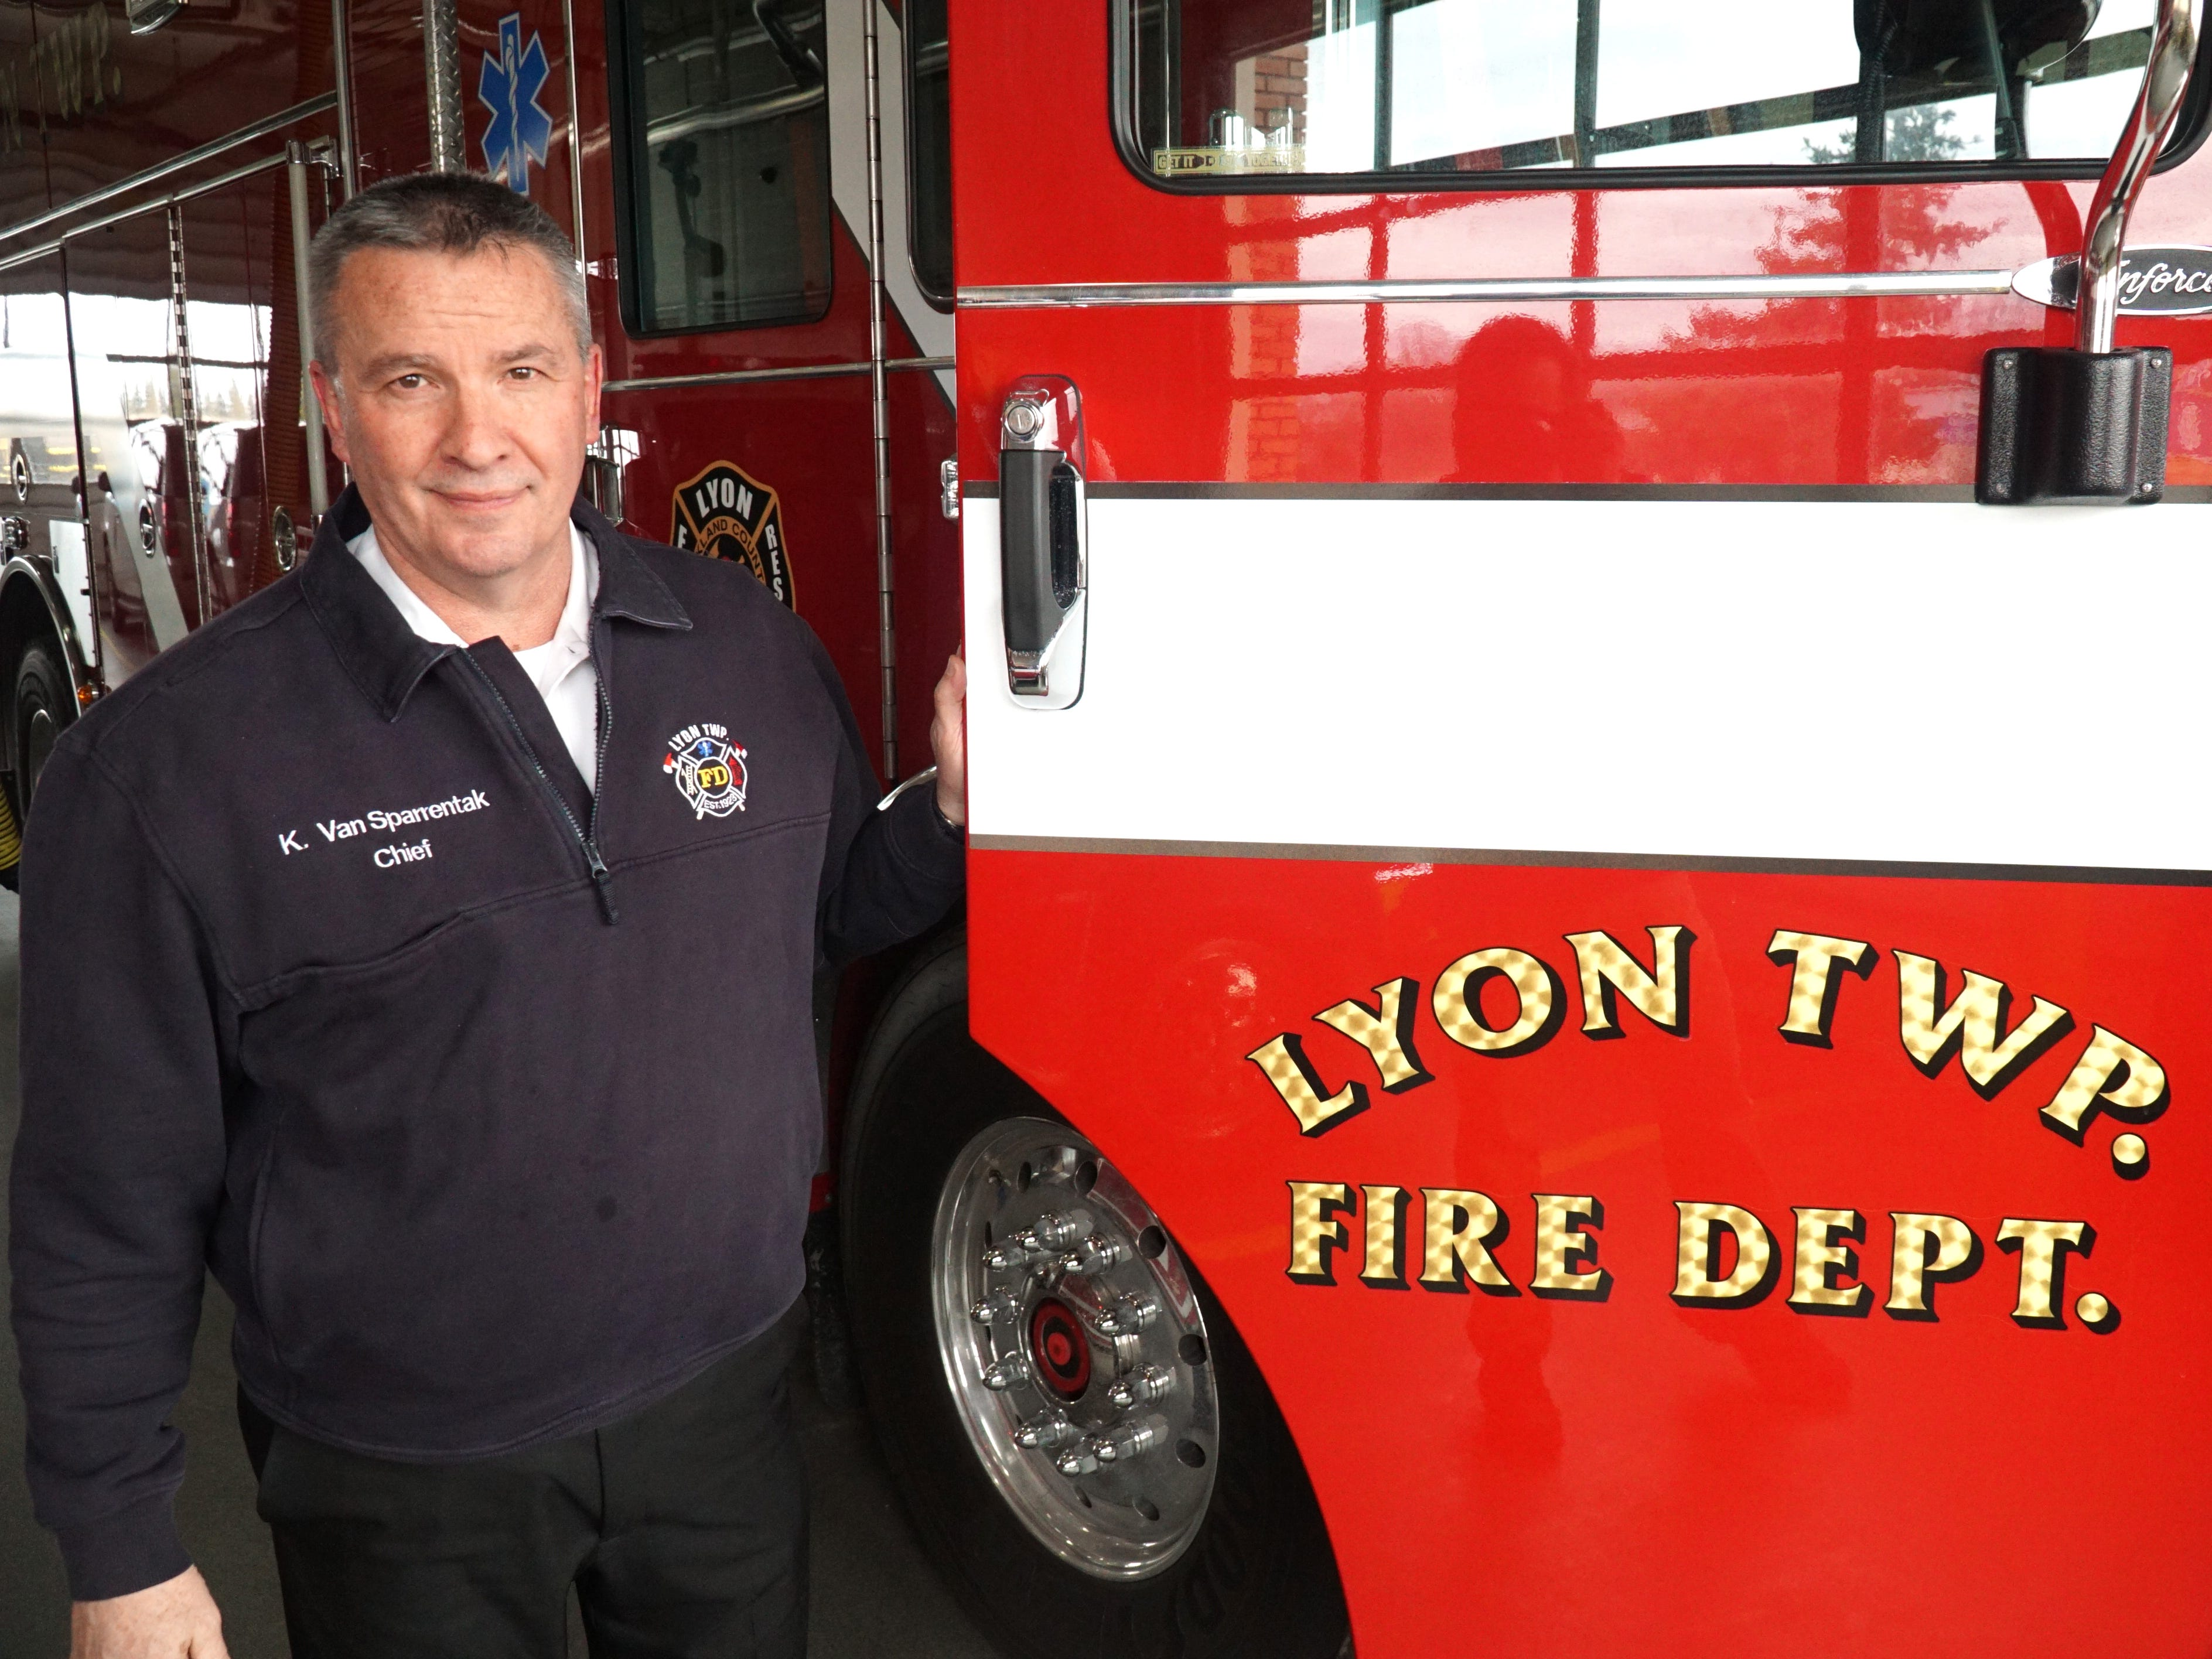 Lyon Township Fire Chief Ken Van Sparrentak.